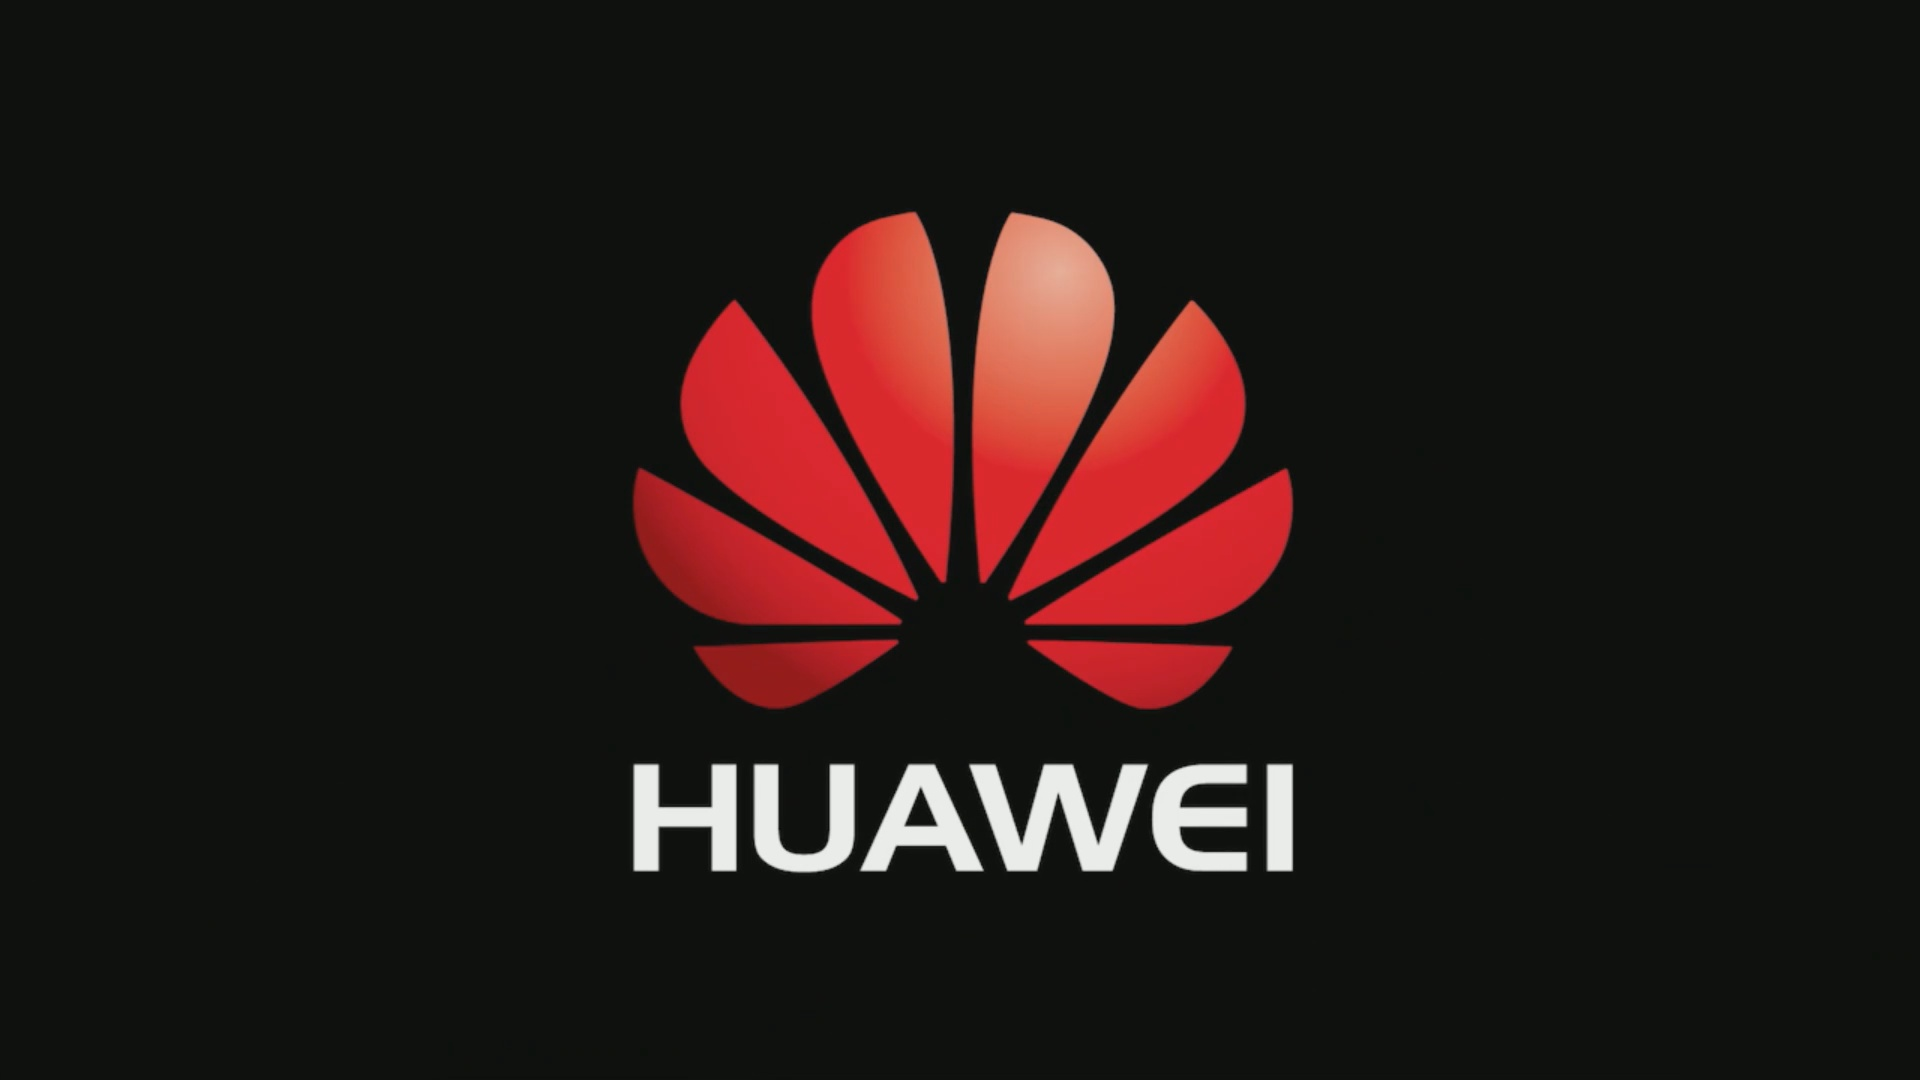 Fixed - Sound Not Works on Huawei Impulse 4G